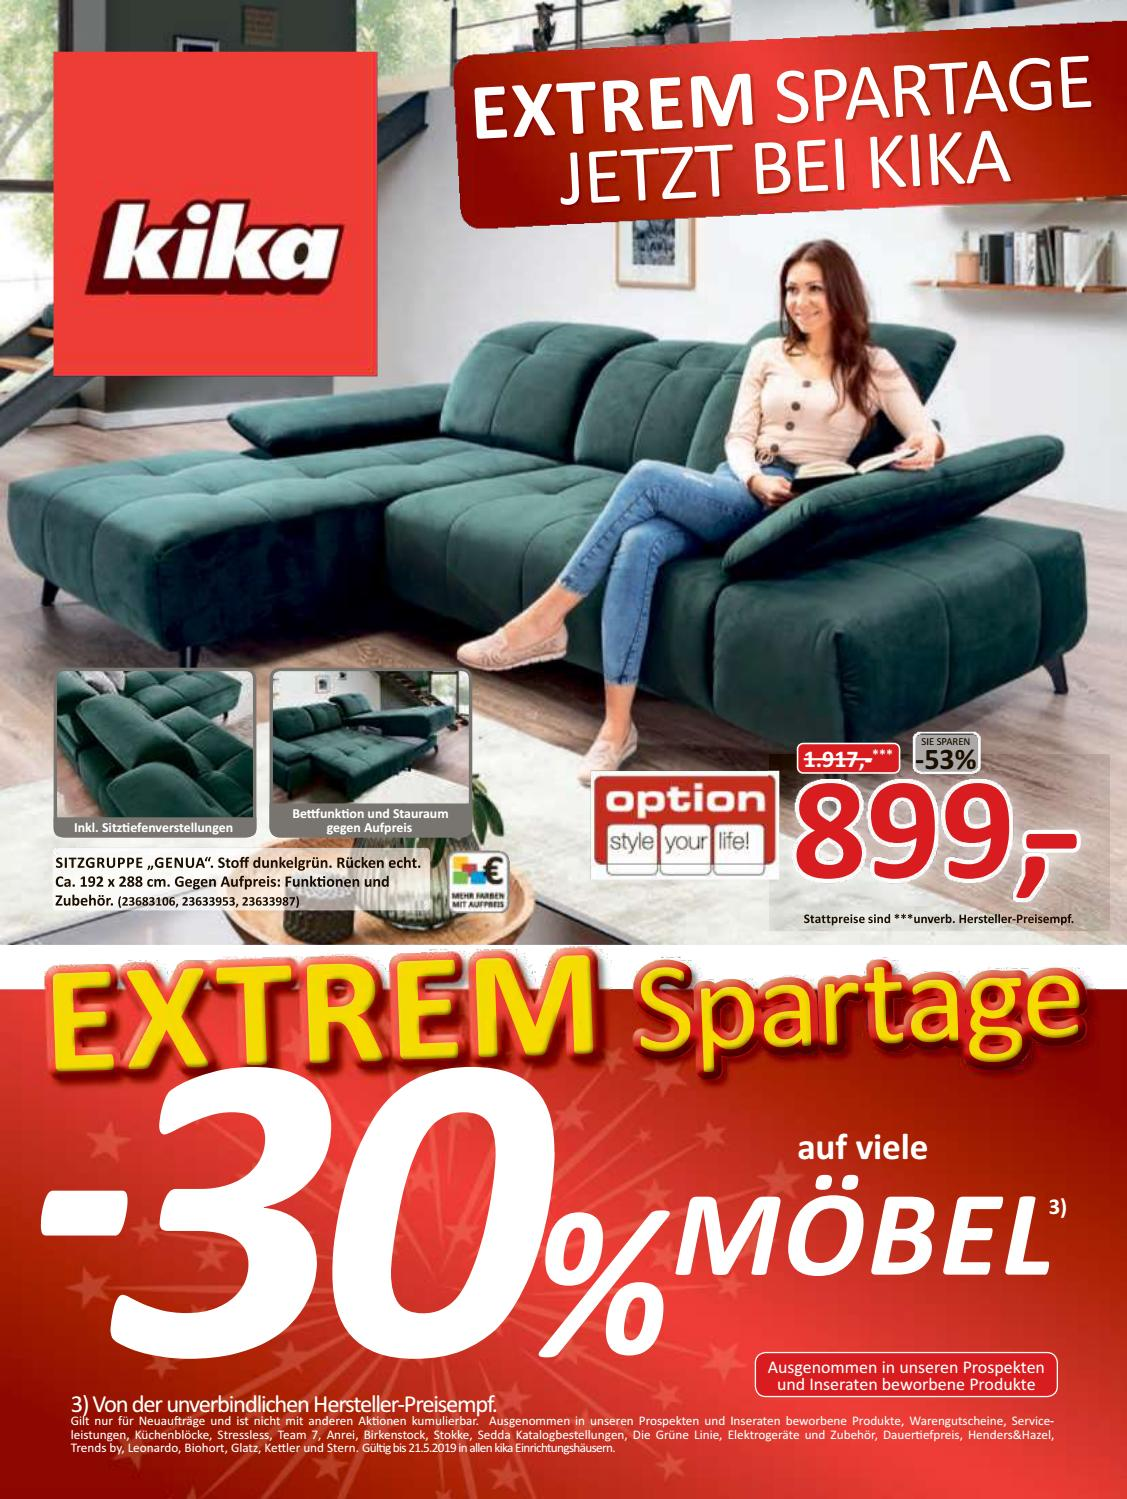 Stressless Universal Kopfkissen Kika Kw20 By Russmedia Digital Gmbh Issuu